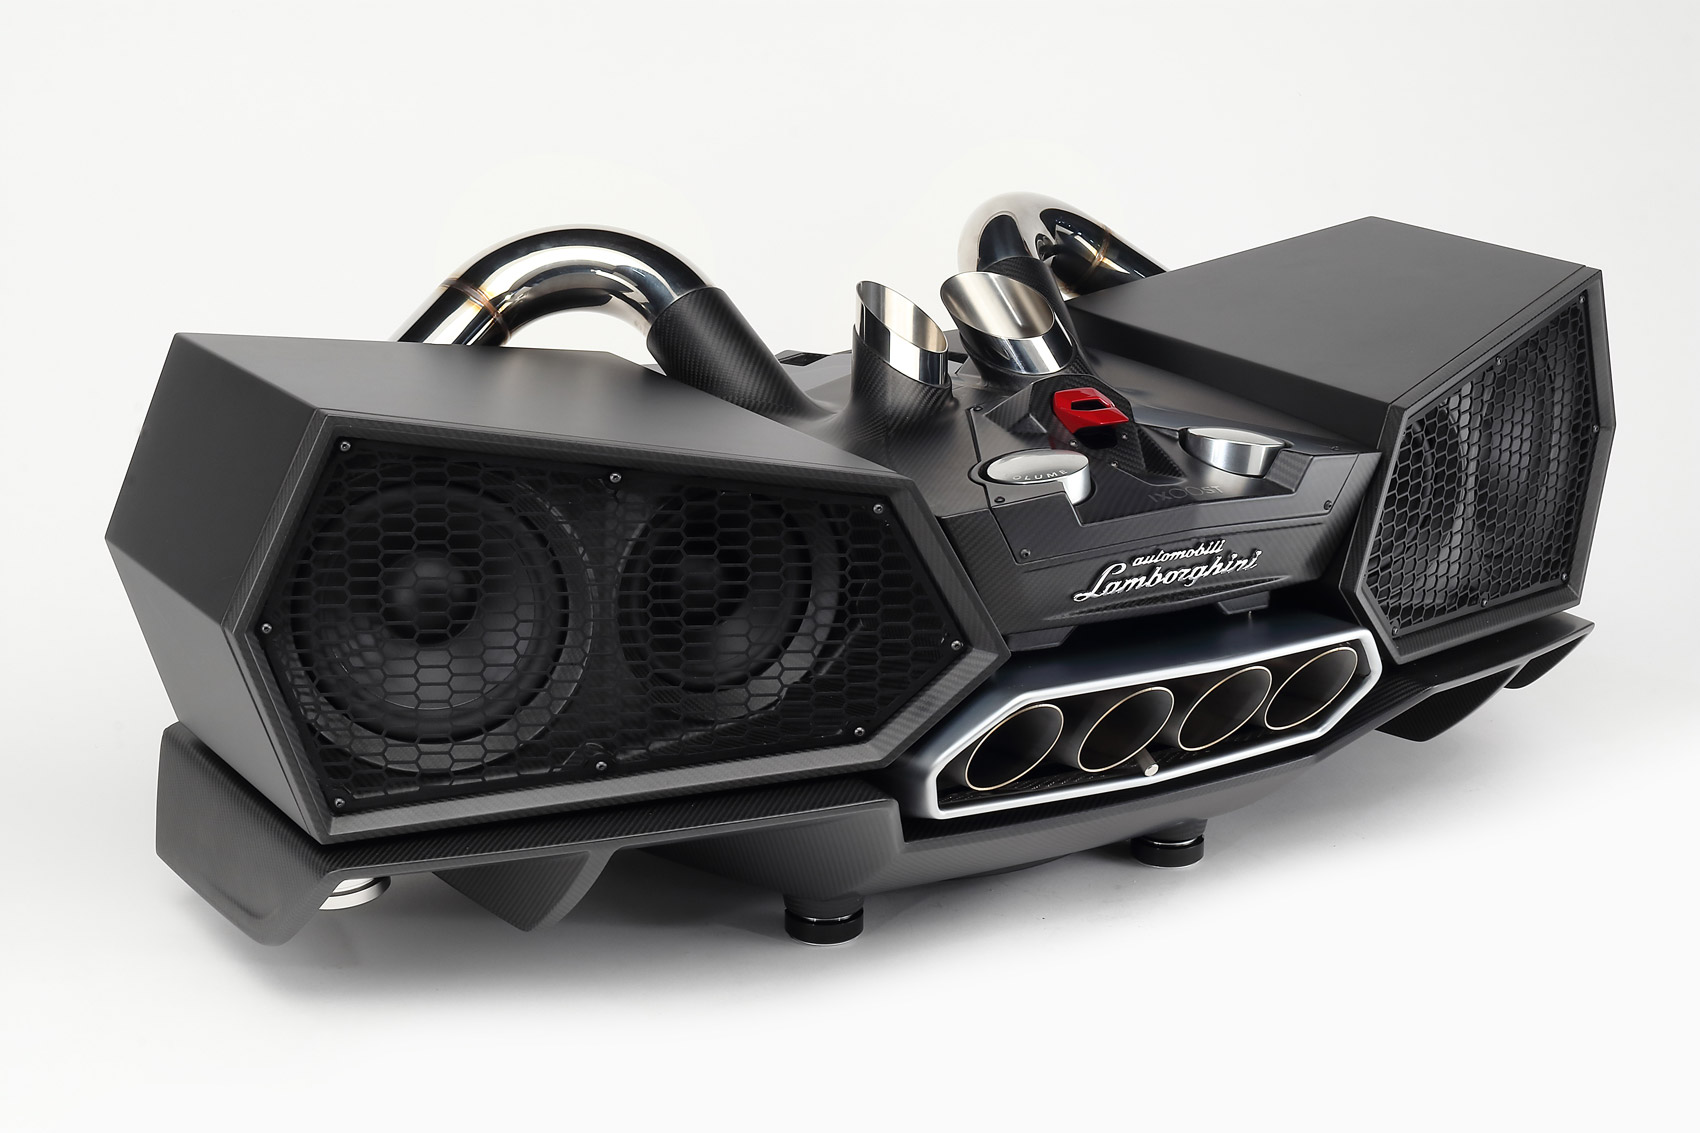 lamborghini-esavox-speakers-1